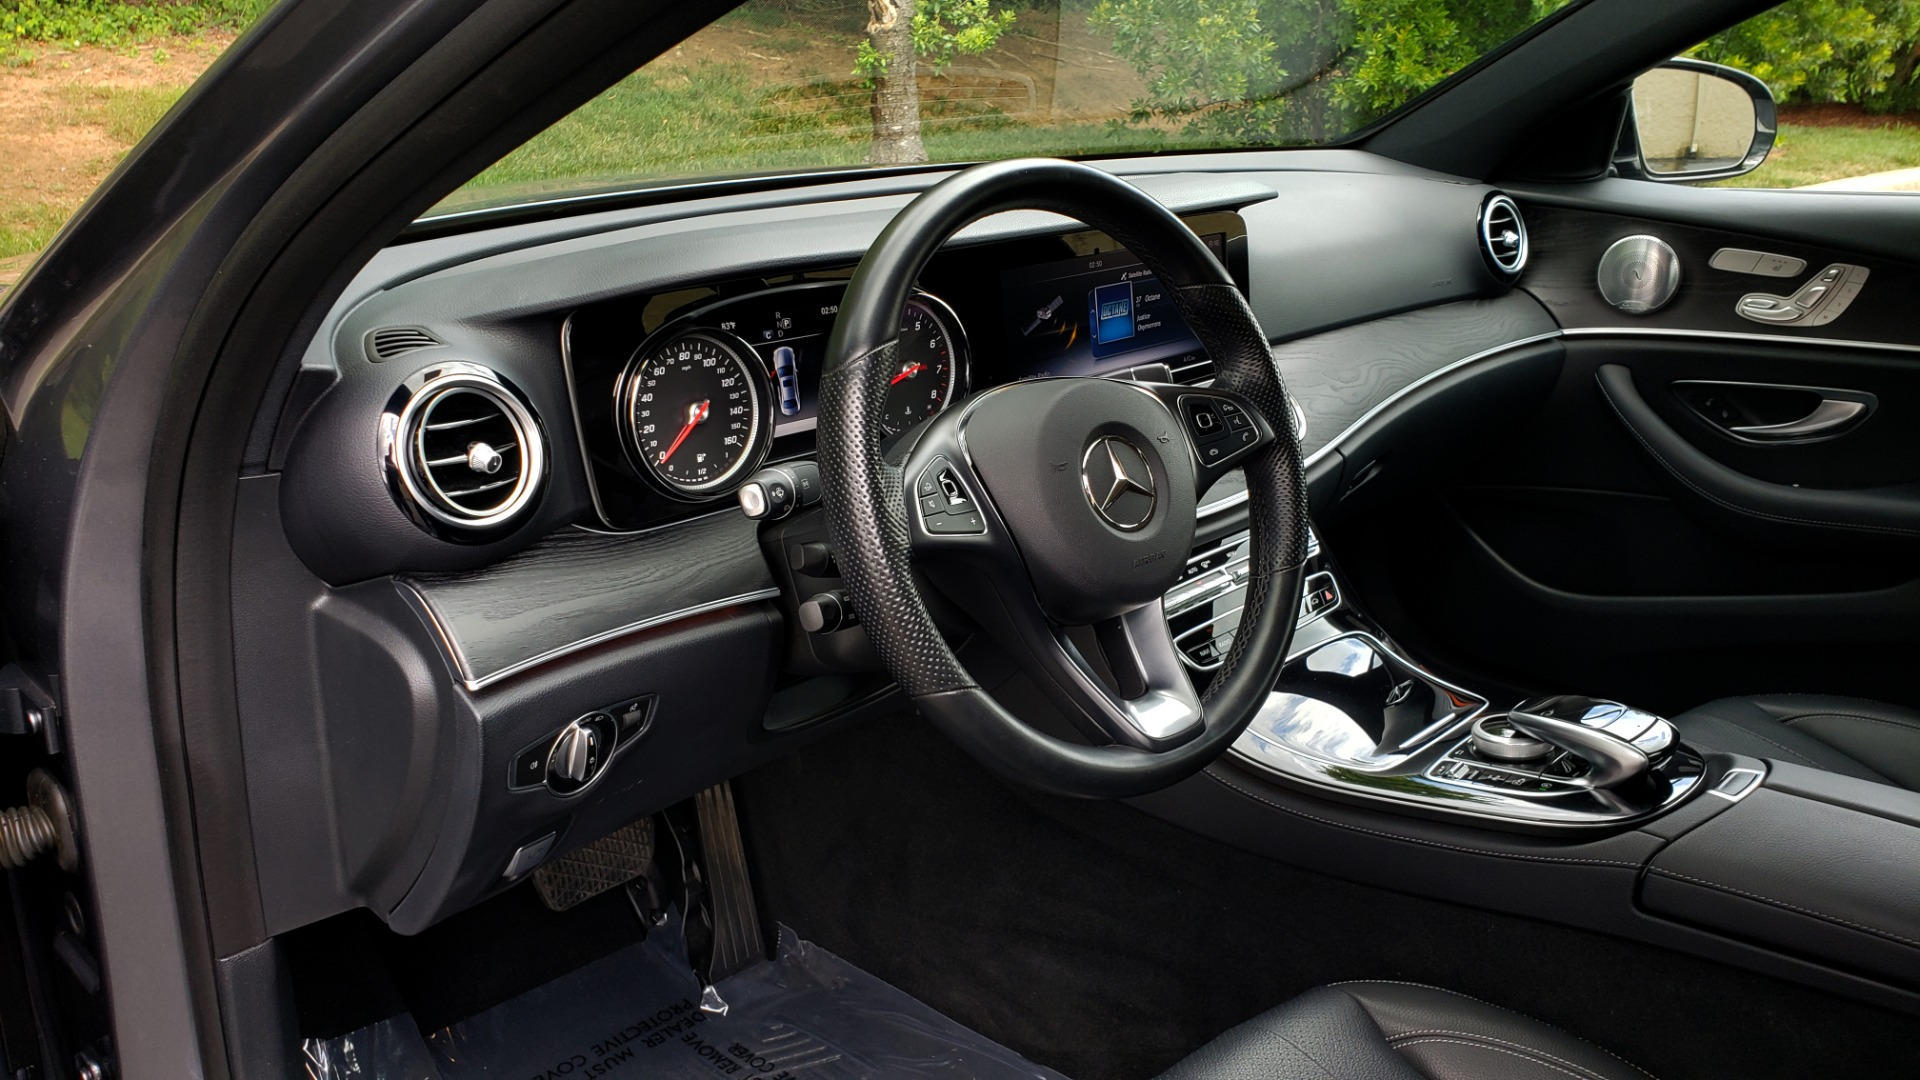 Used 2017 Mercedes-Benz E-Class E 300 4MATIC PREMIUM / SPORT / NAV / BURMESTER / HTD STS / REARVIEW for sale $30,495 at Formula Imports in Charlotte NC 28227 34